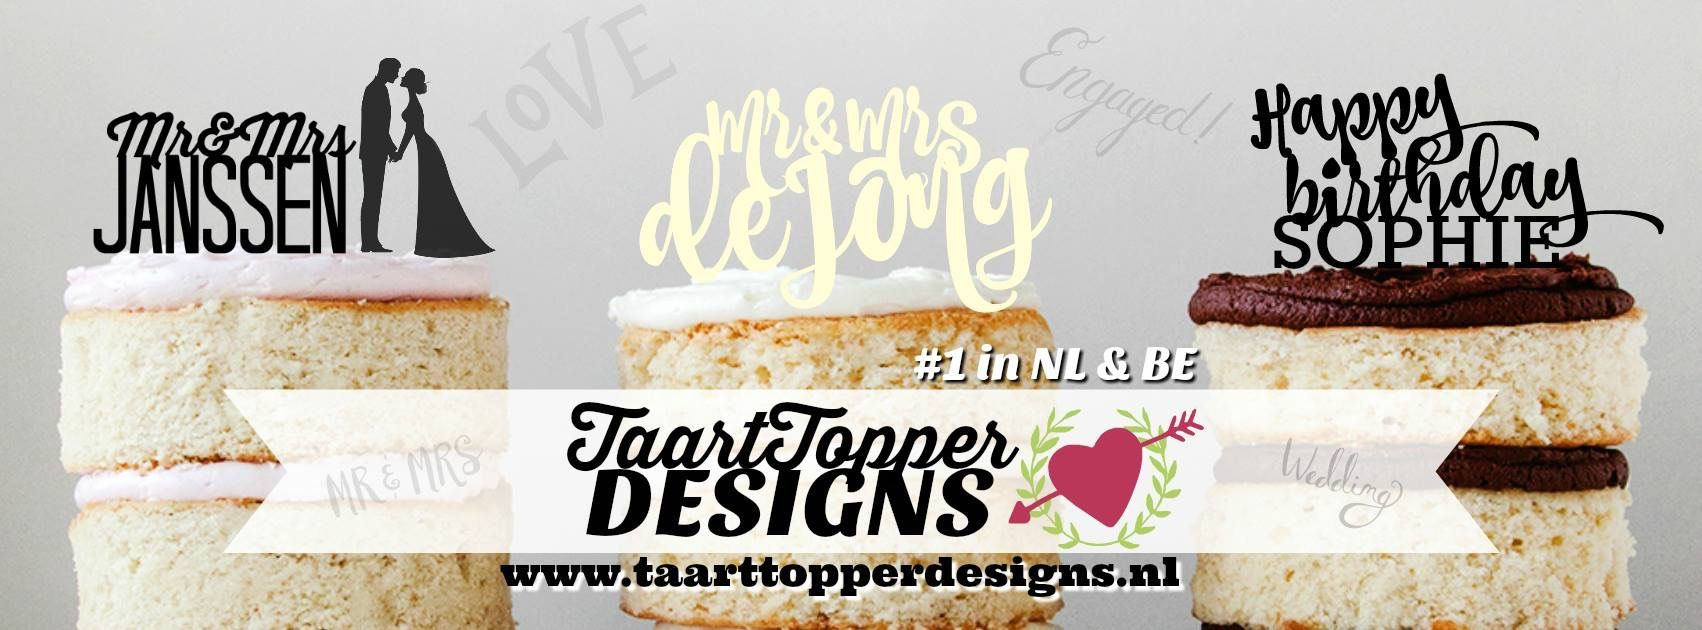 www.taarttopperdrsigns.nl